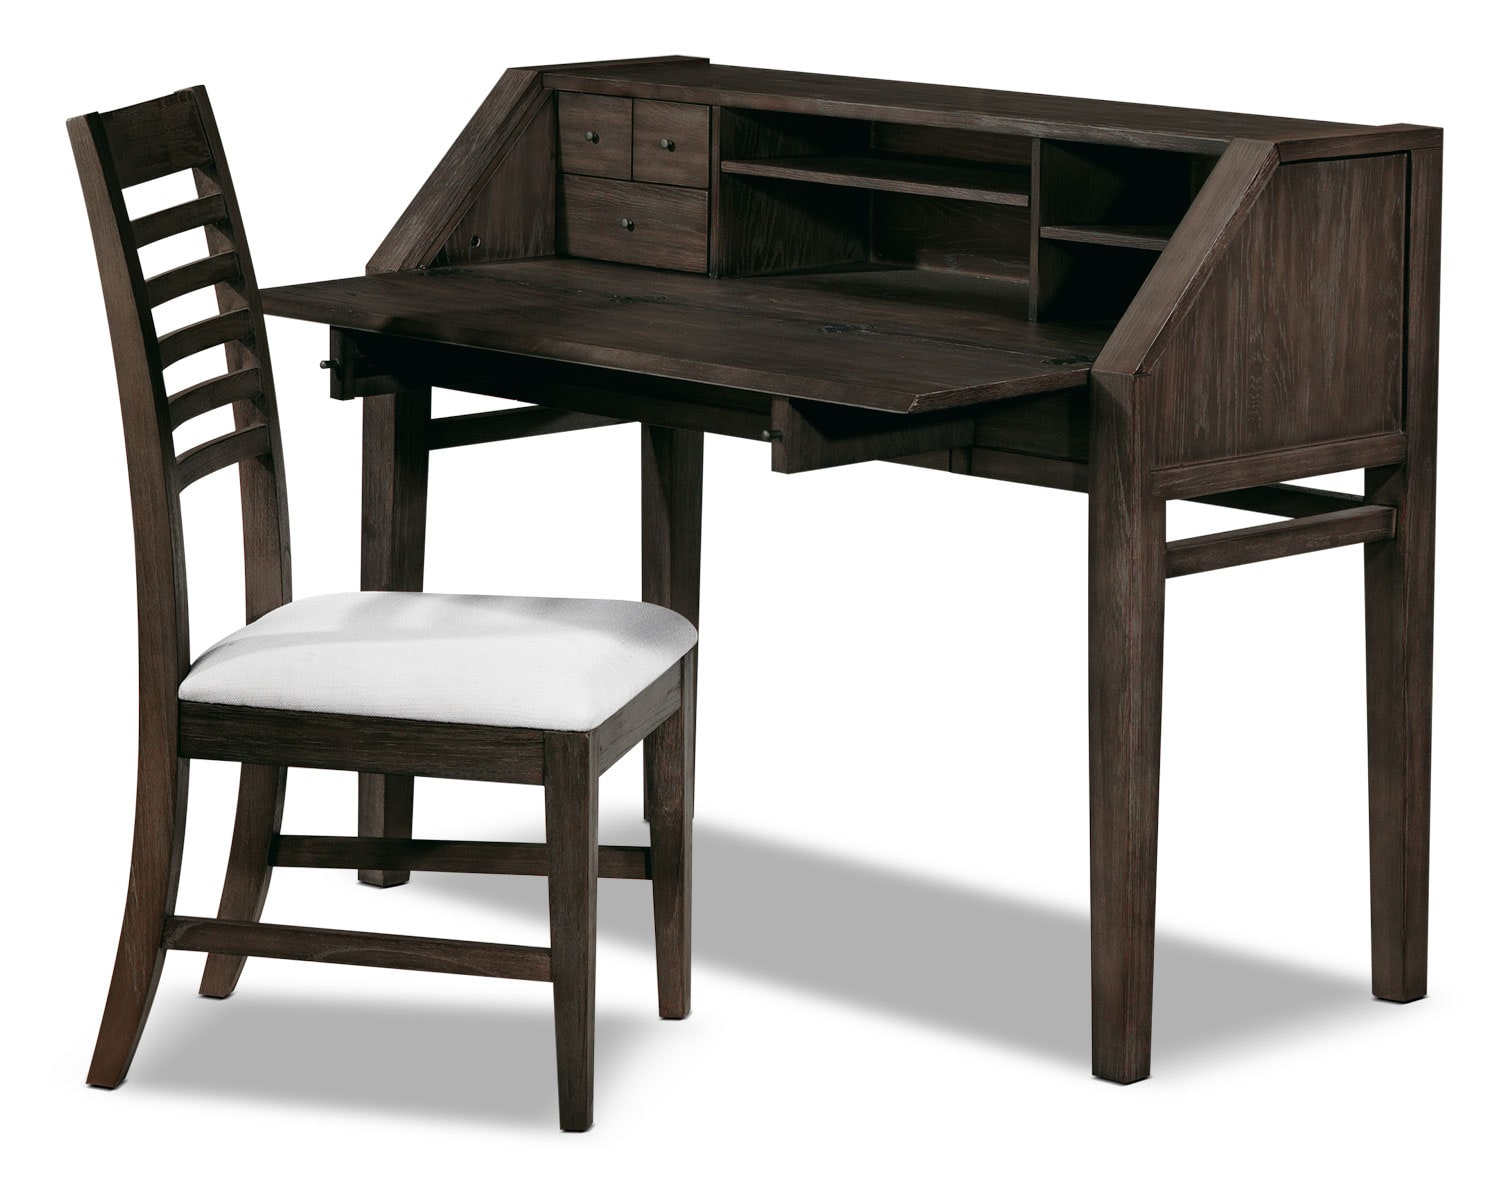 Bravo 2-Piece Desk and Chair Set - Platinum Oak